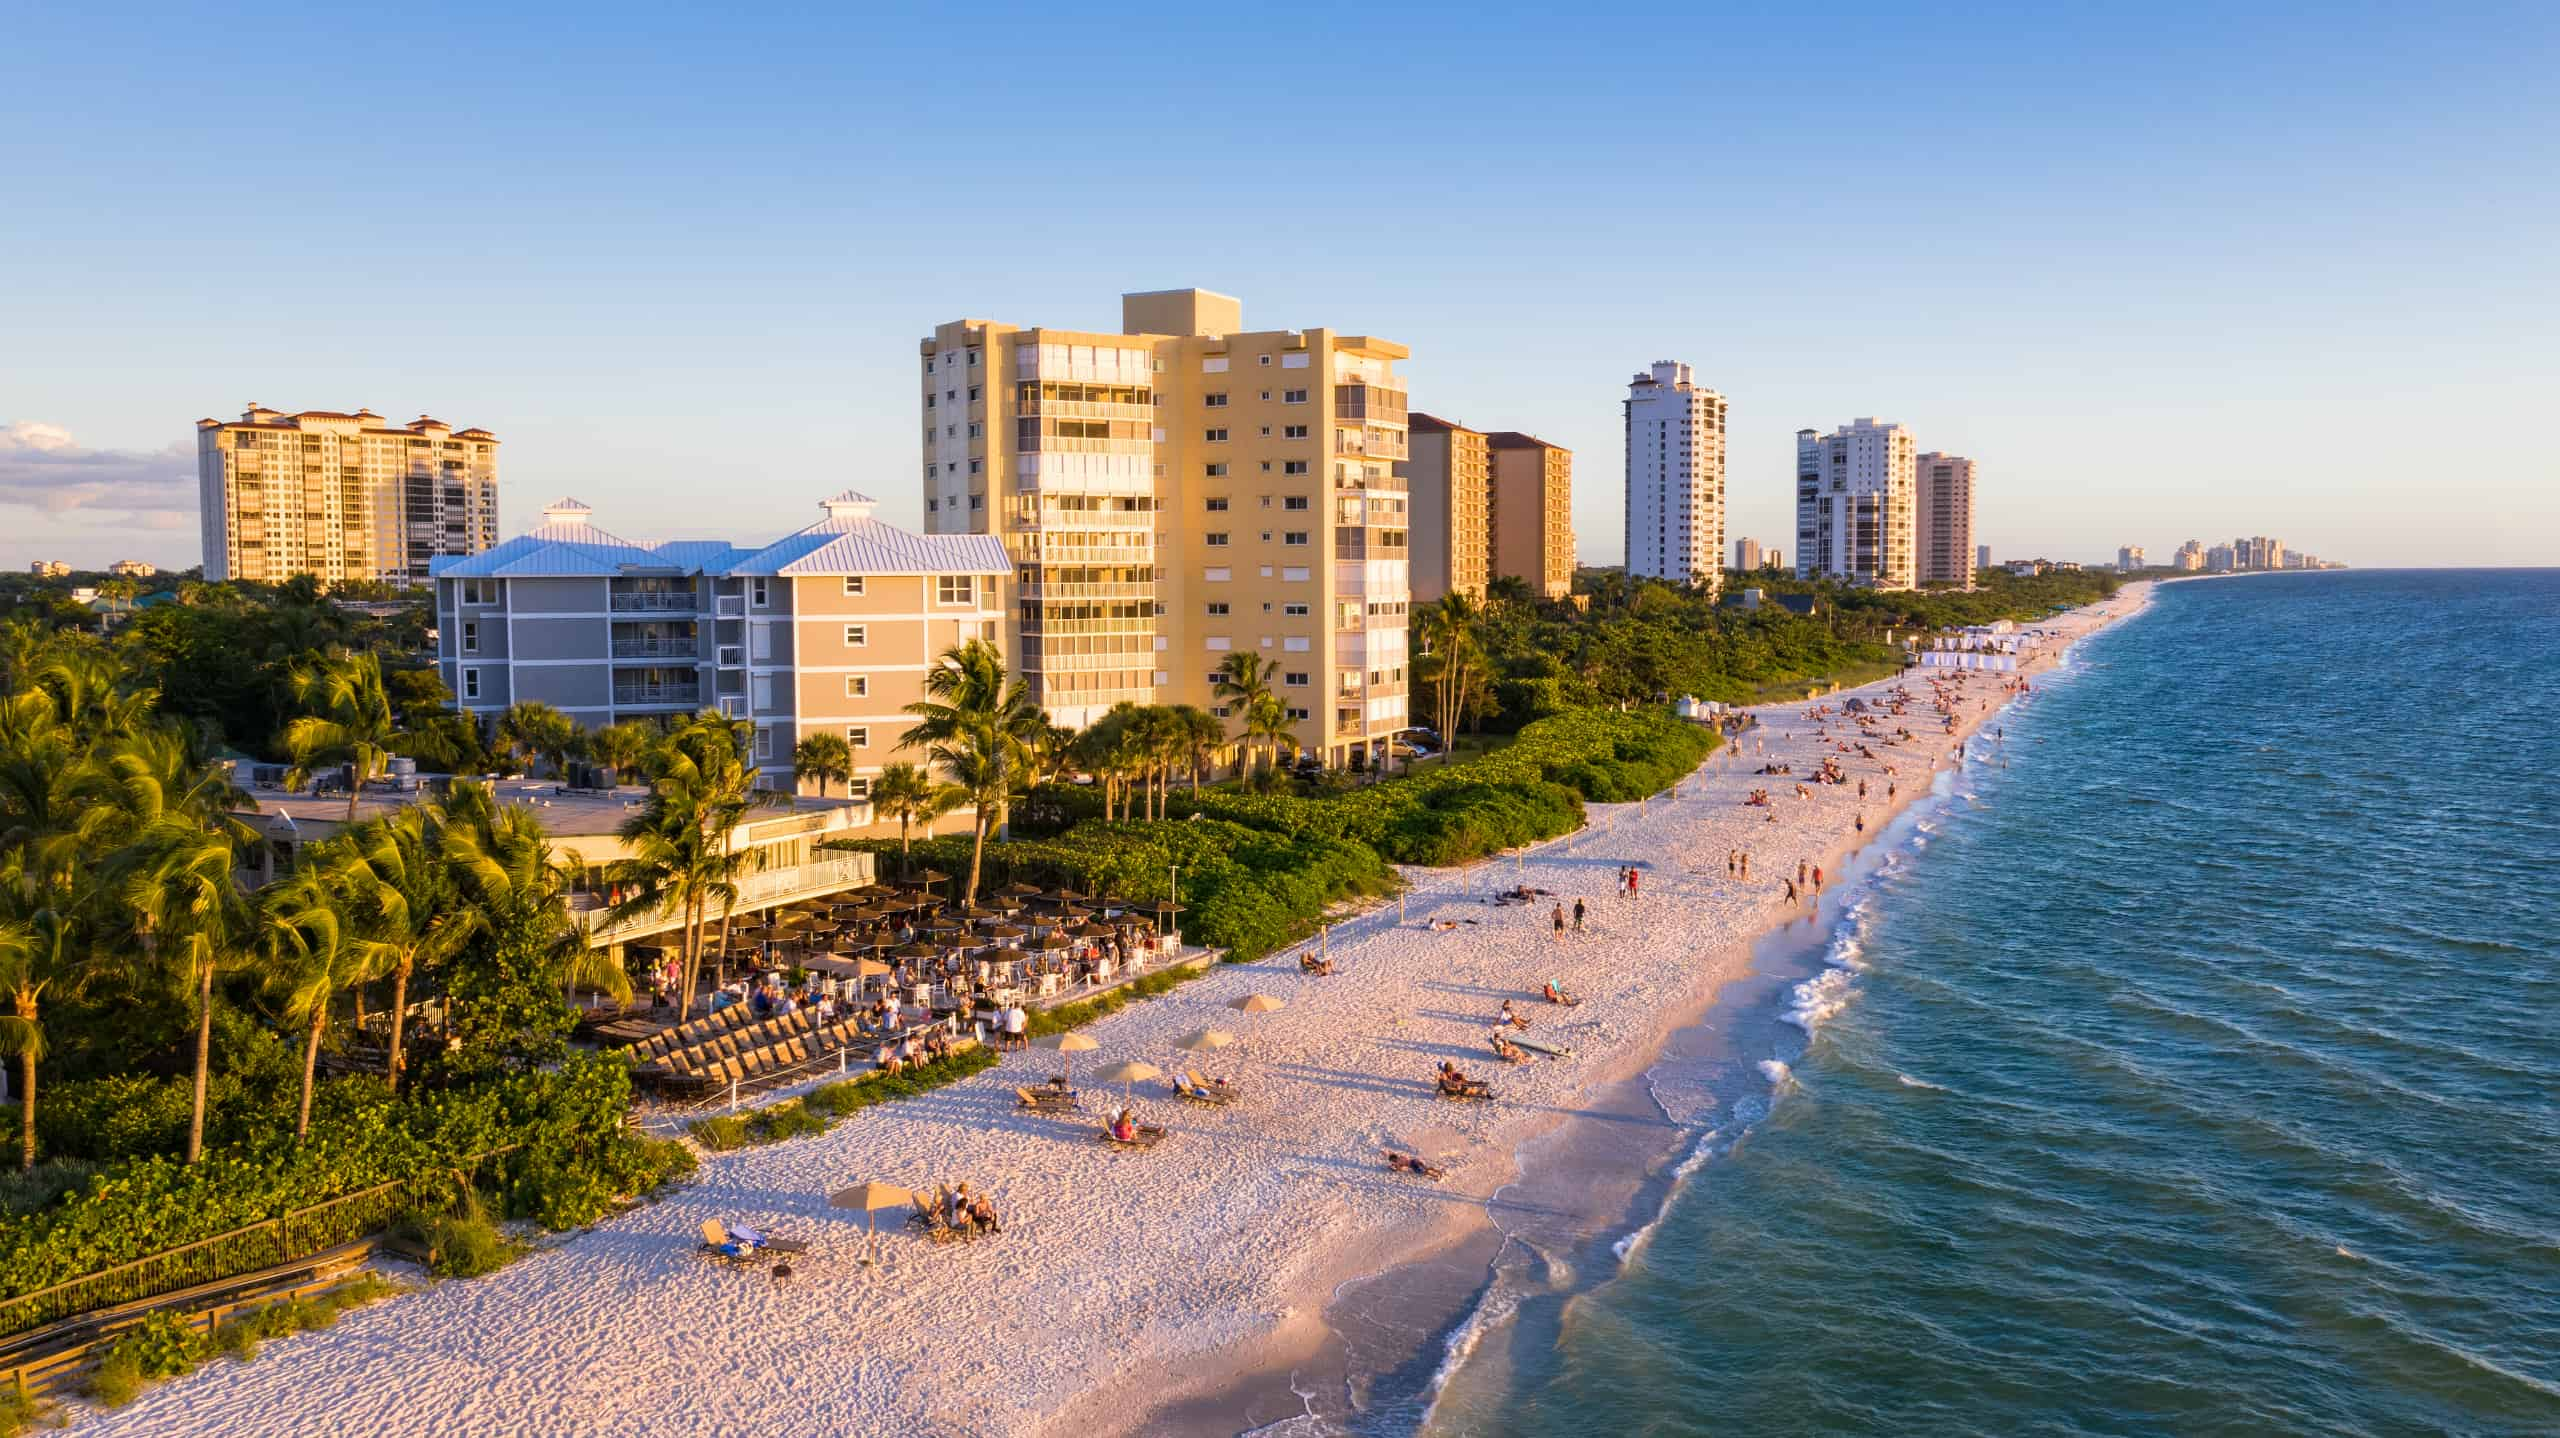 Vanderbilt Beach Resort  Beach Front Hotel in Naples Florida